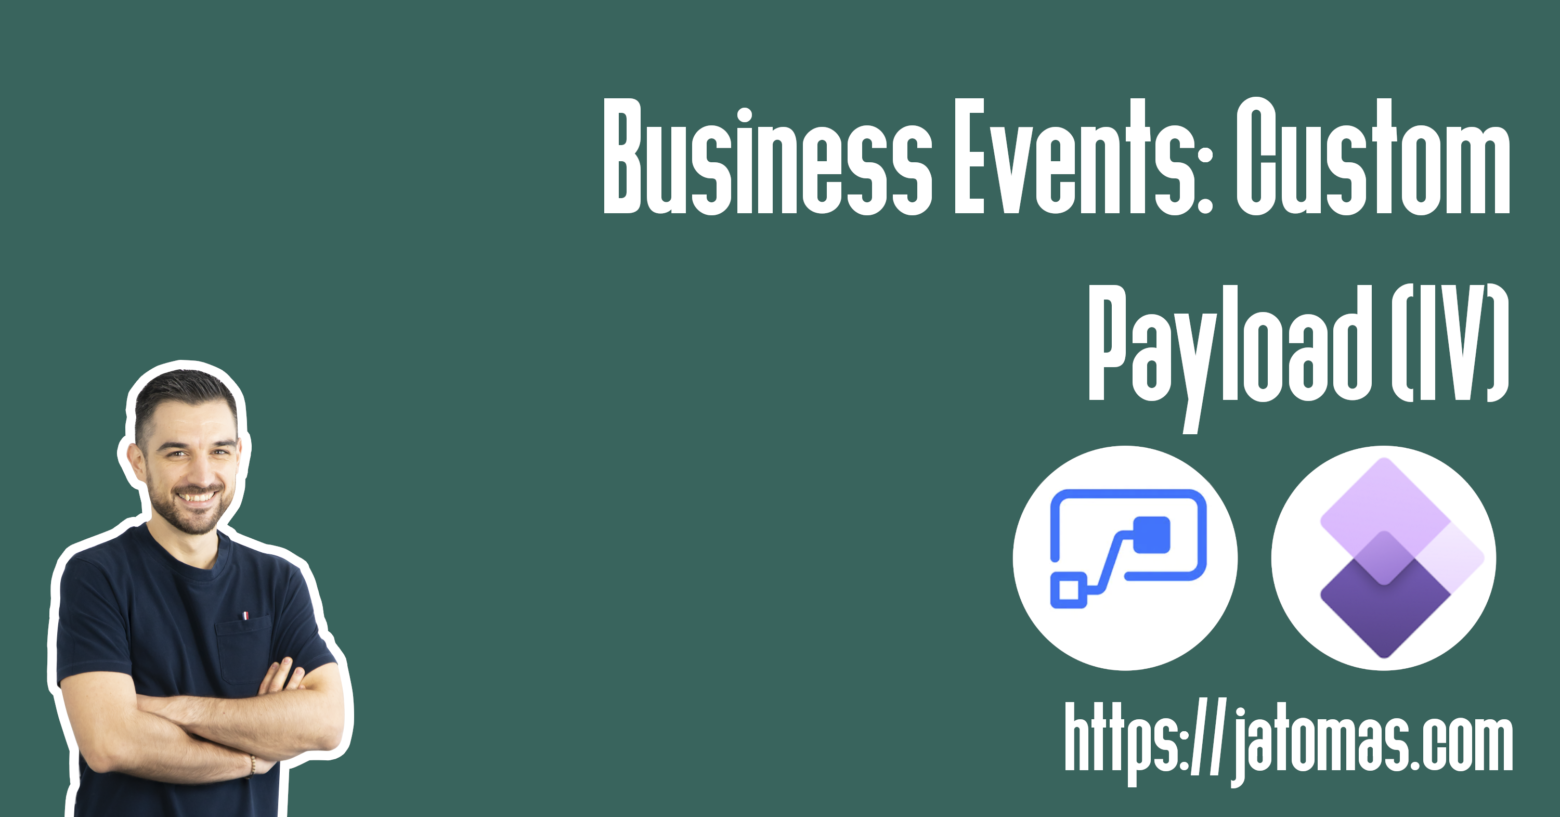 Business Events: Custom Payload (IV)